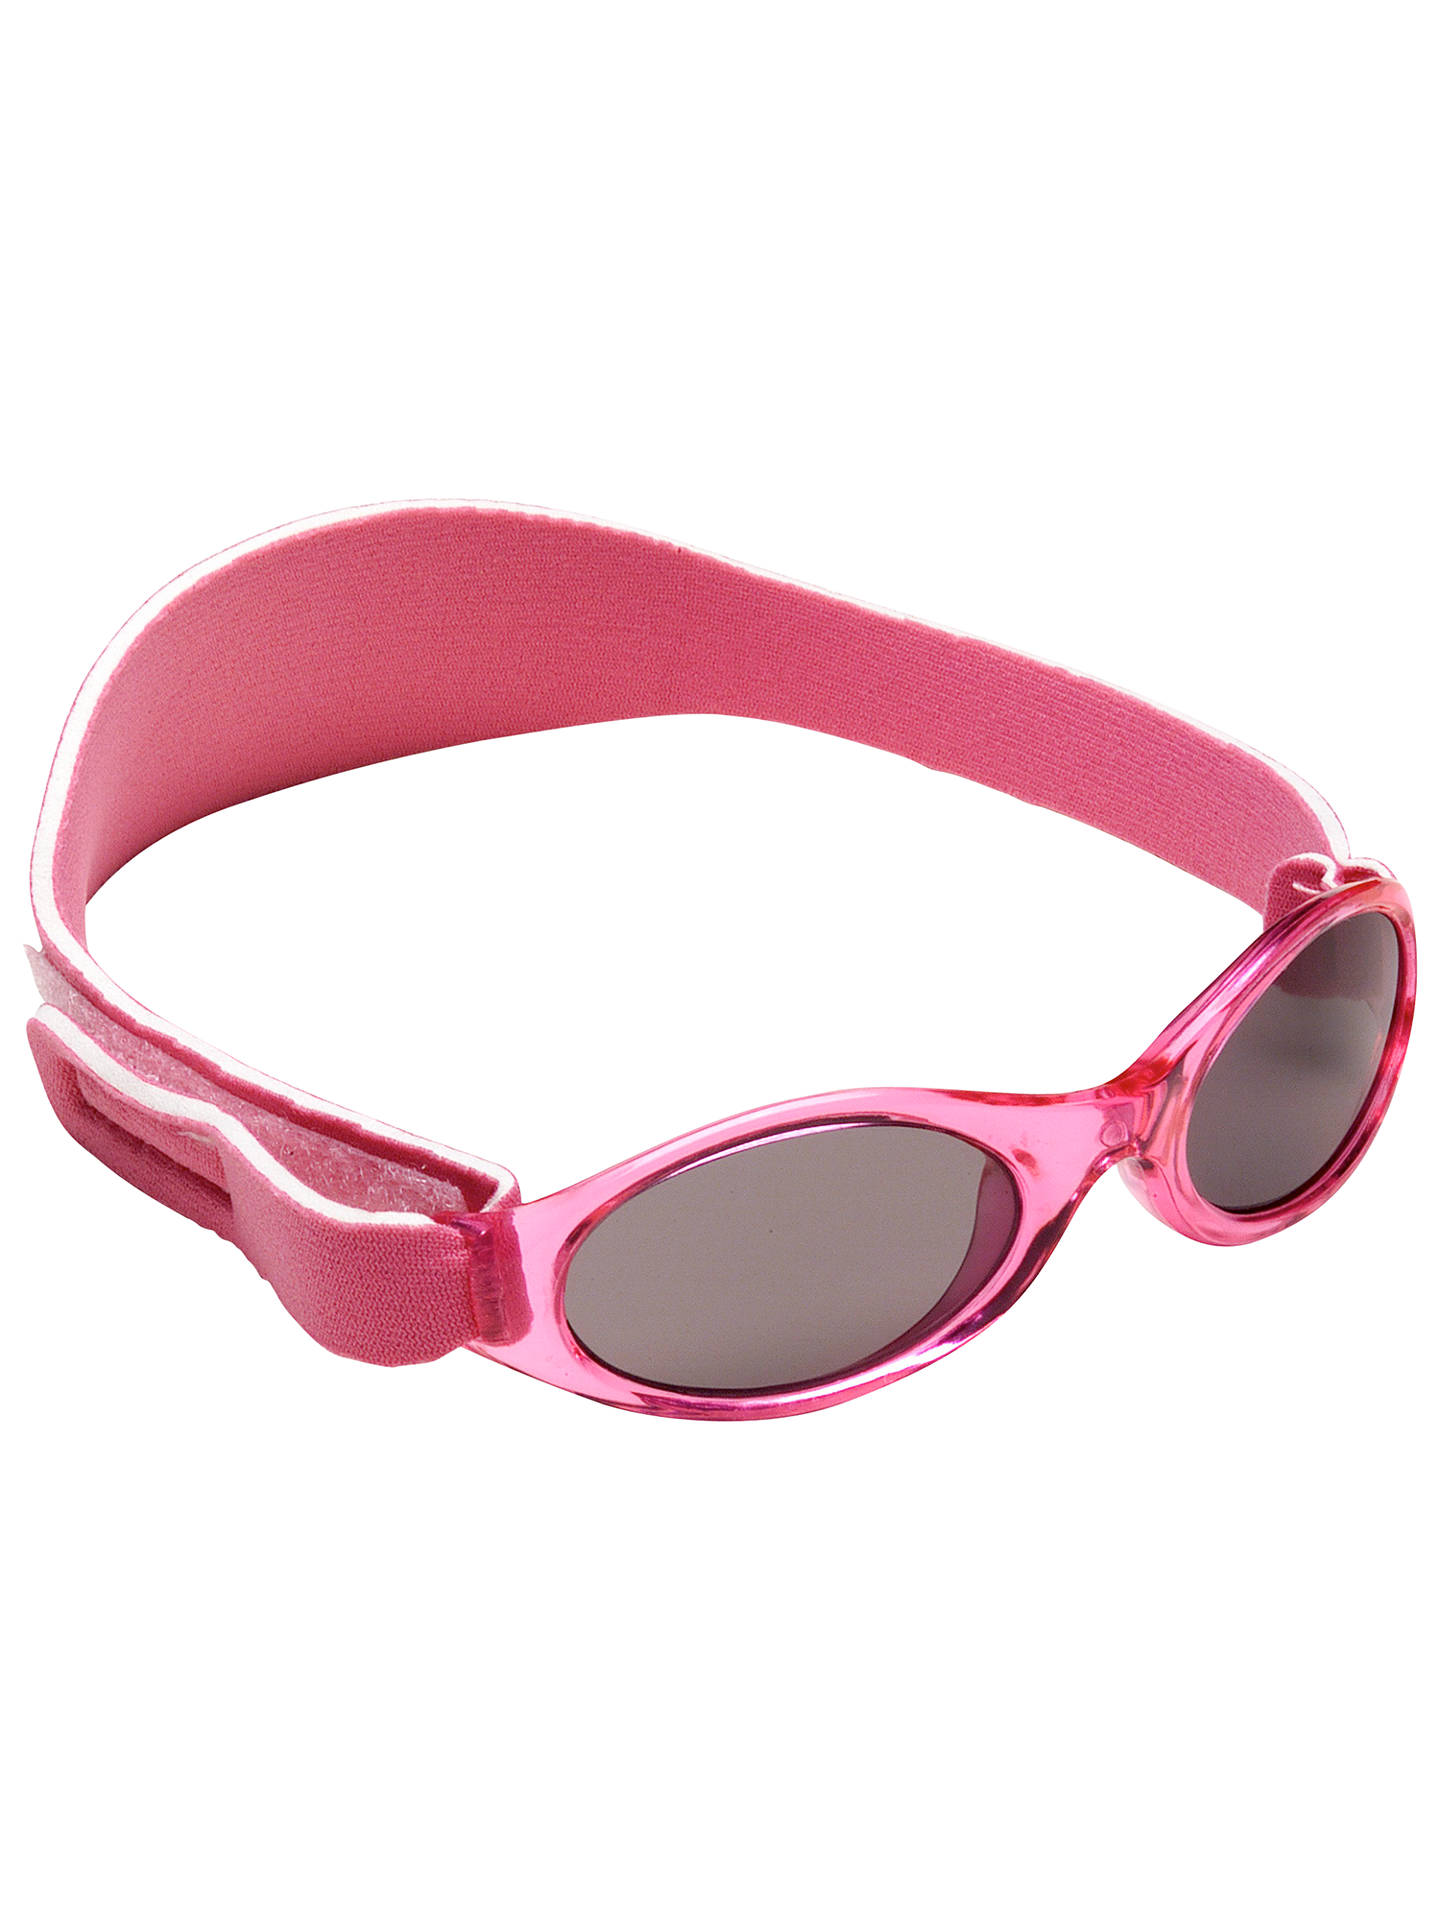 78b7a075ec2 Baby Banz Baby Adventure Sunglasses at John Lewis   Partners